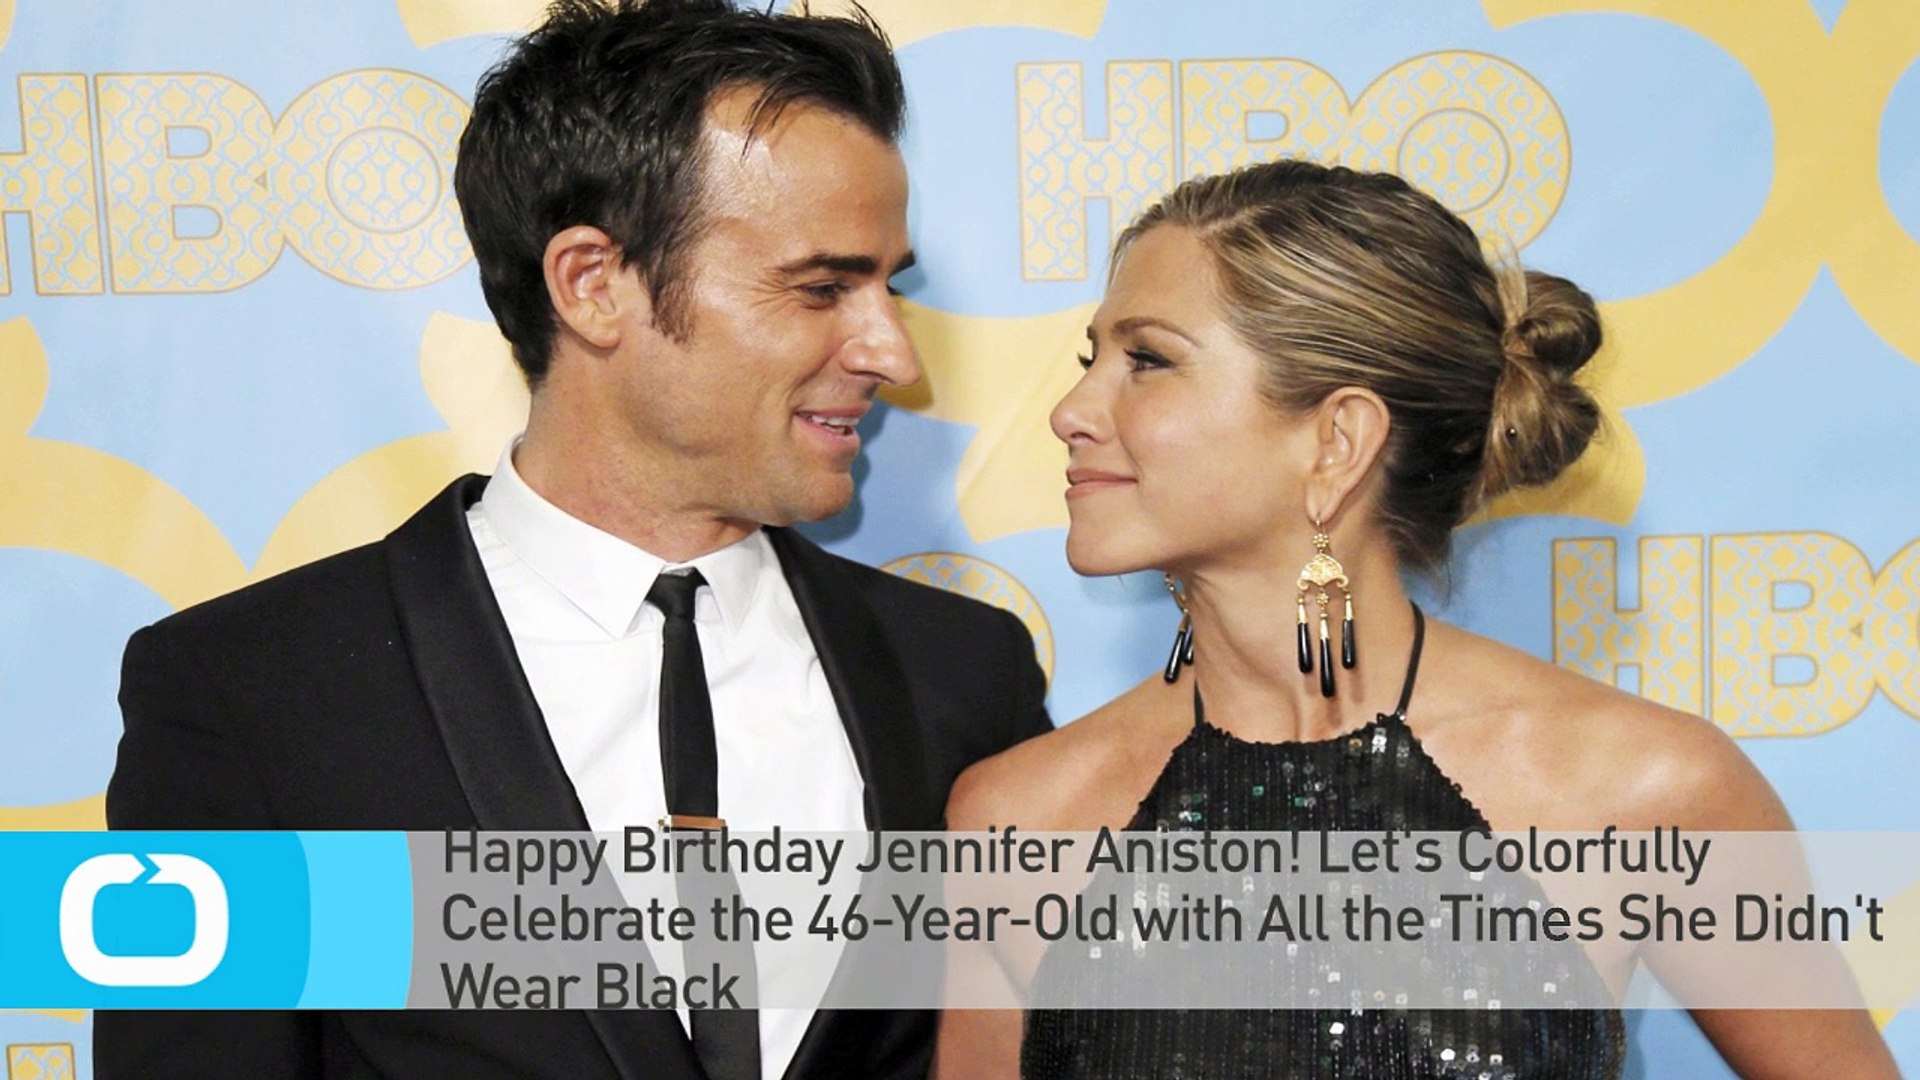 Happy Birthday Jennifer Aniston! Let's Colorfully Celebrate the 46-Year-Old With All the Times